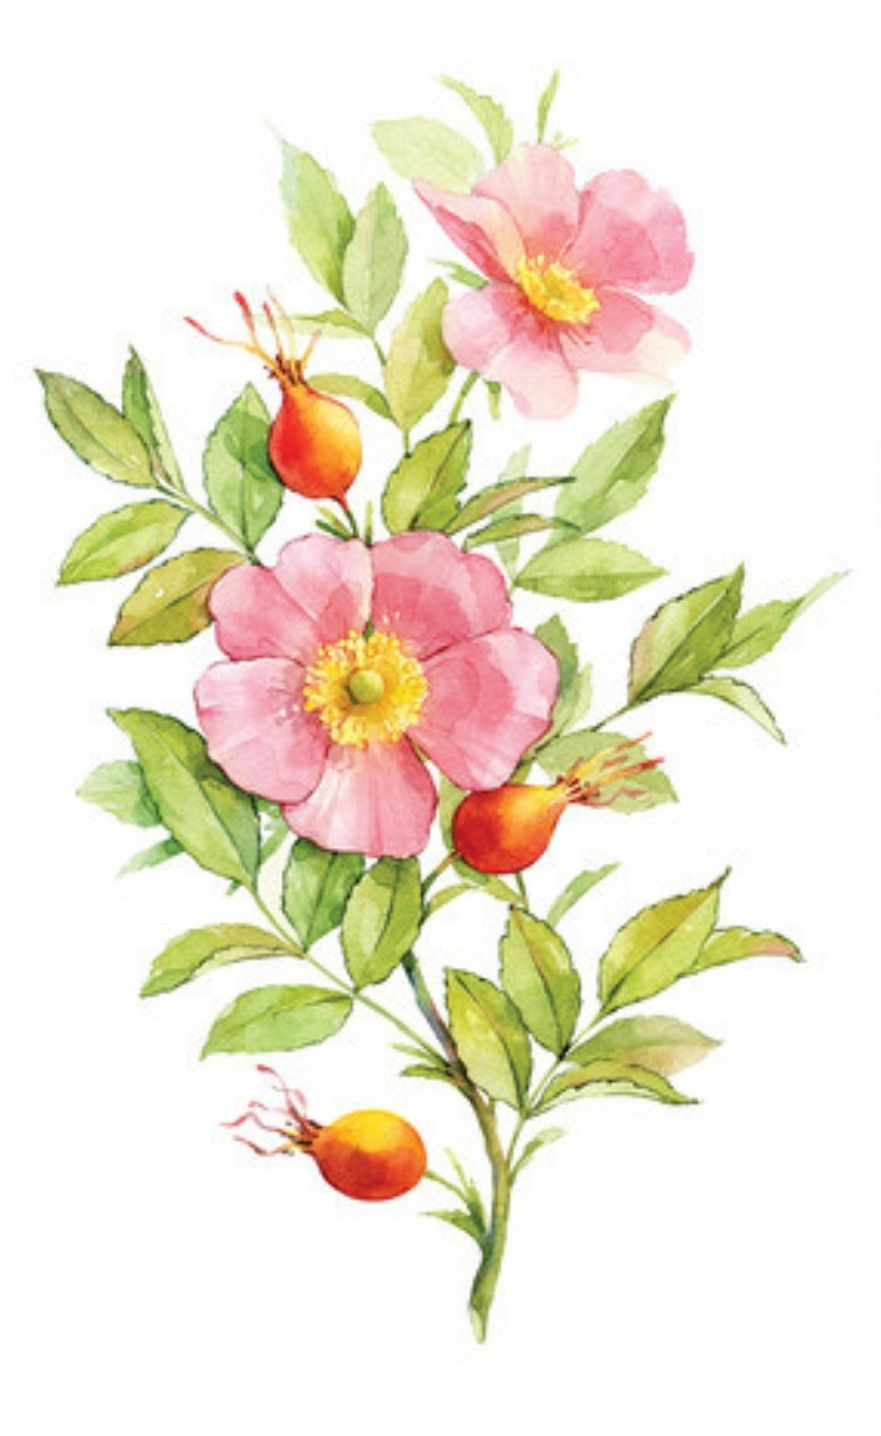 Pin by Vaughn Bell on Botanicals and Florals to Illustrate